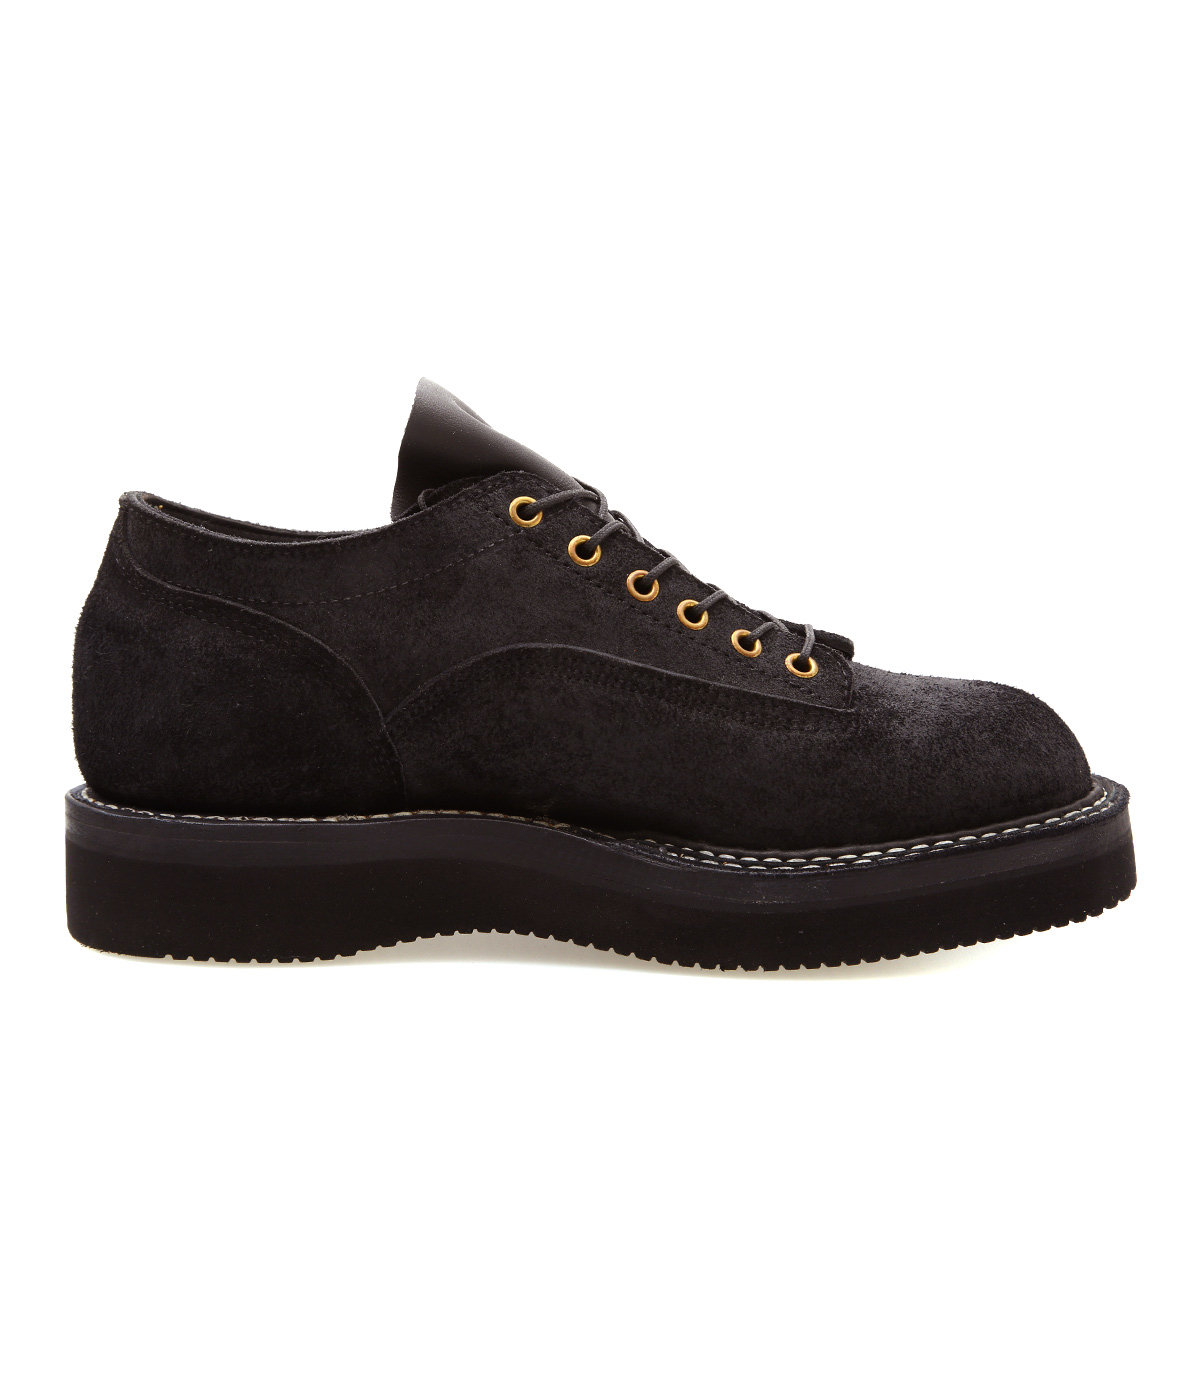 NORTHWEST OXFORD -ROUGHOUT BLACK-